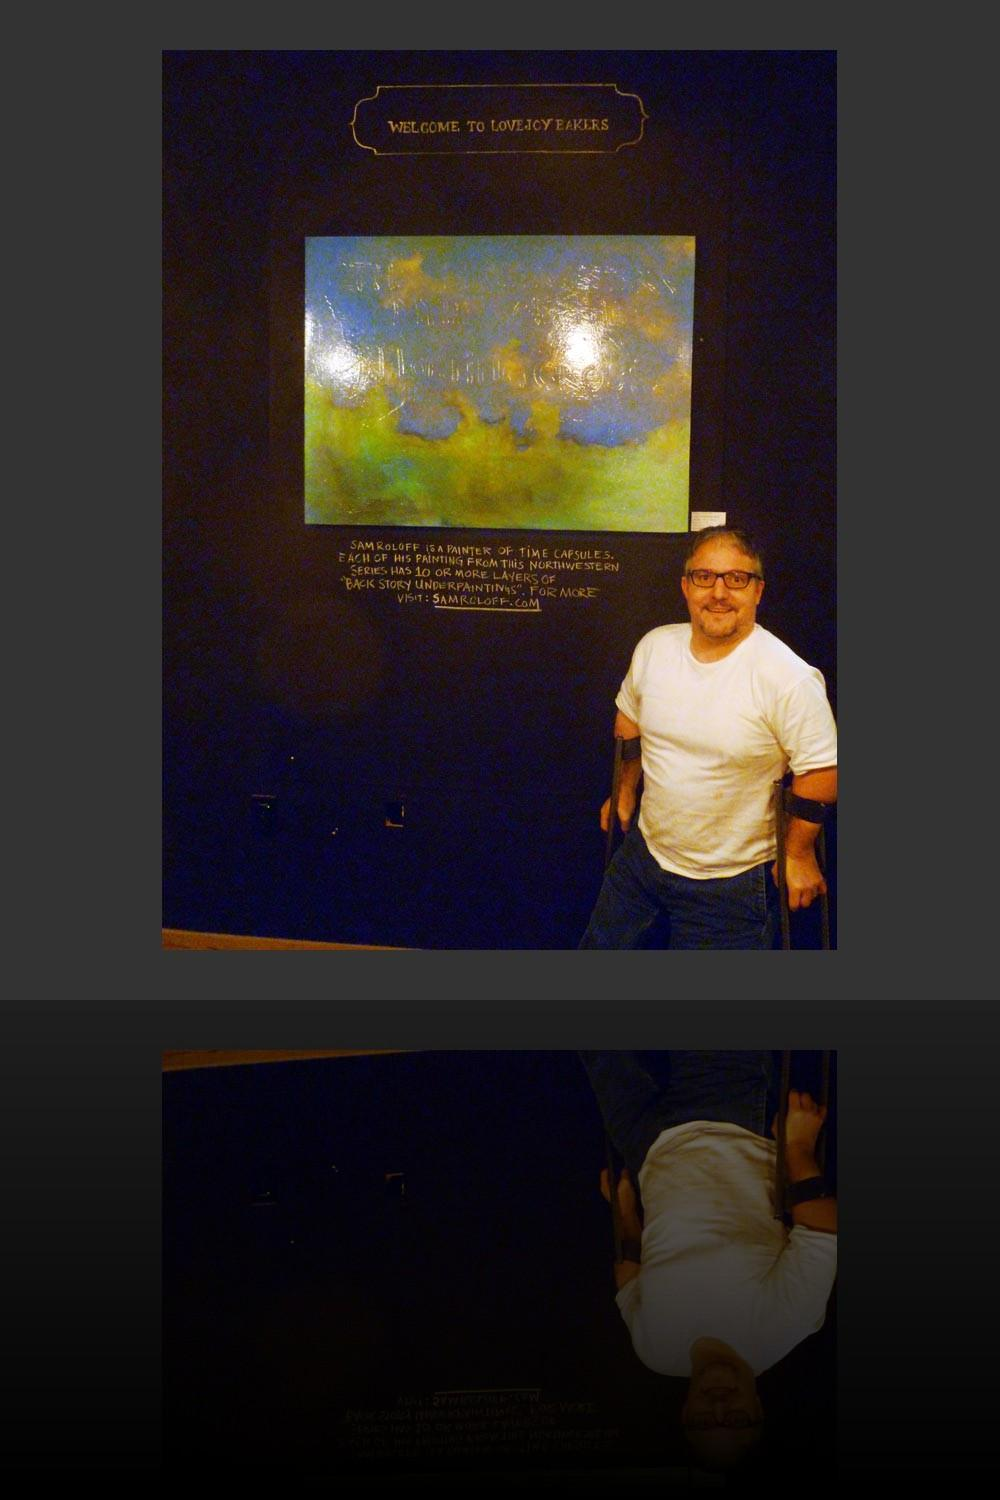 Sam Roloff standing in front of the painting